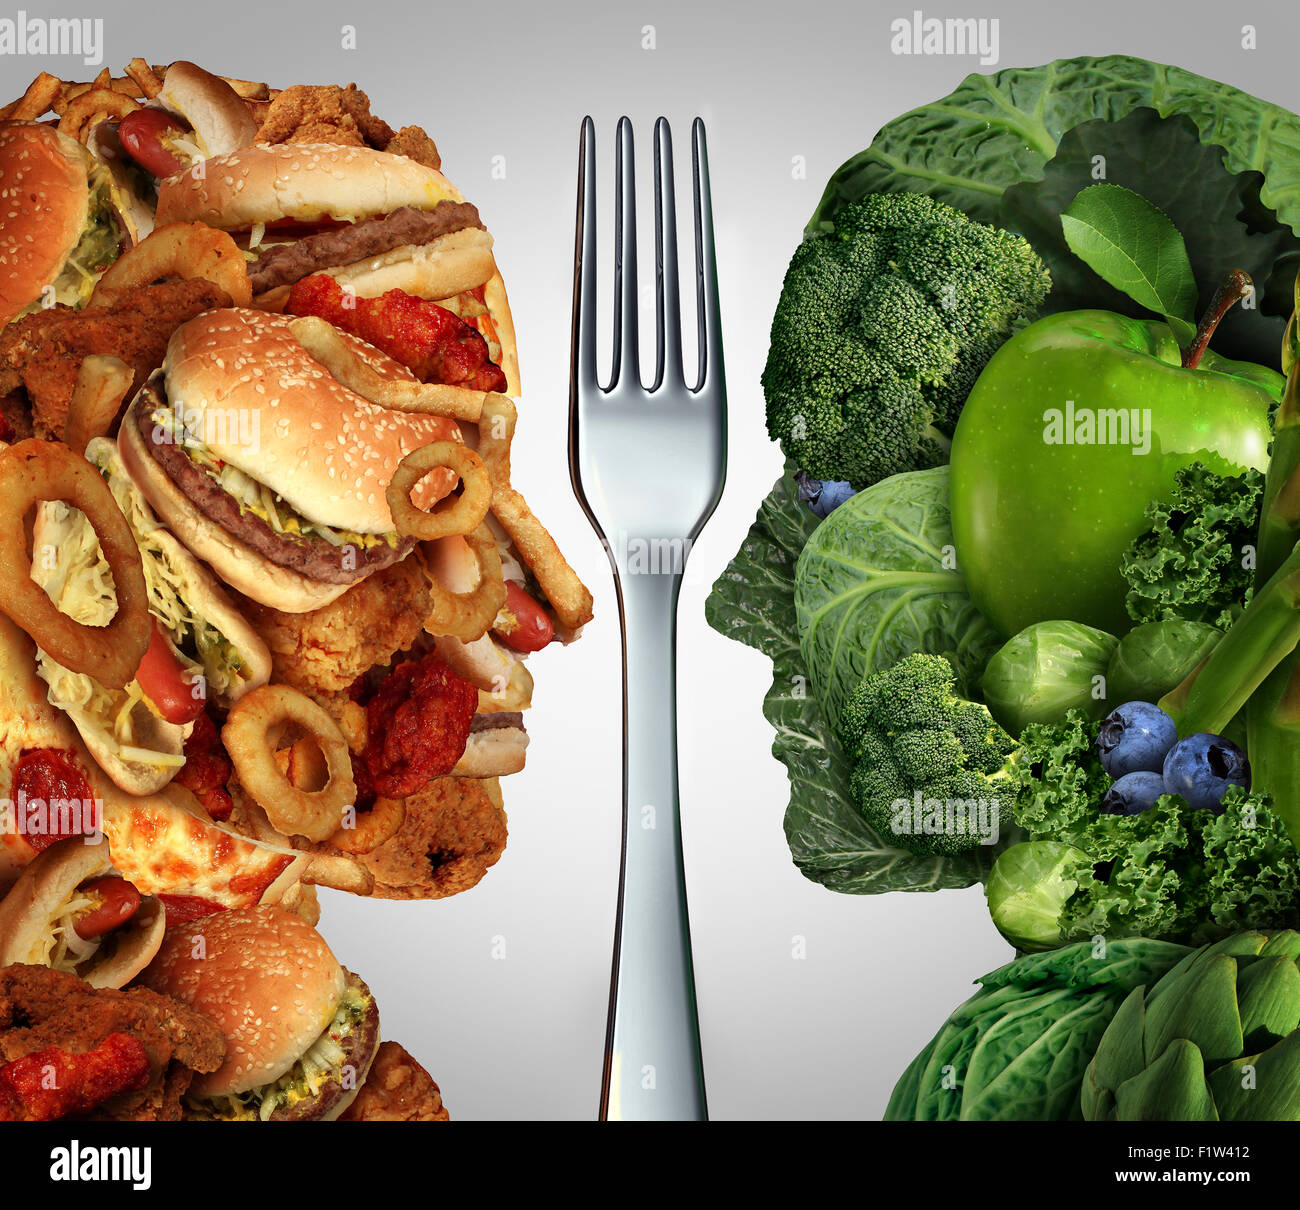 Nutrition decision concept and diet choices dilemma between healthy good fresh fruit and vegetables or greasy cholesterol - Stock Image